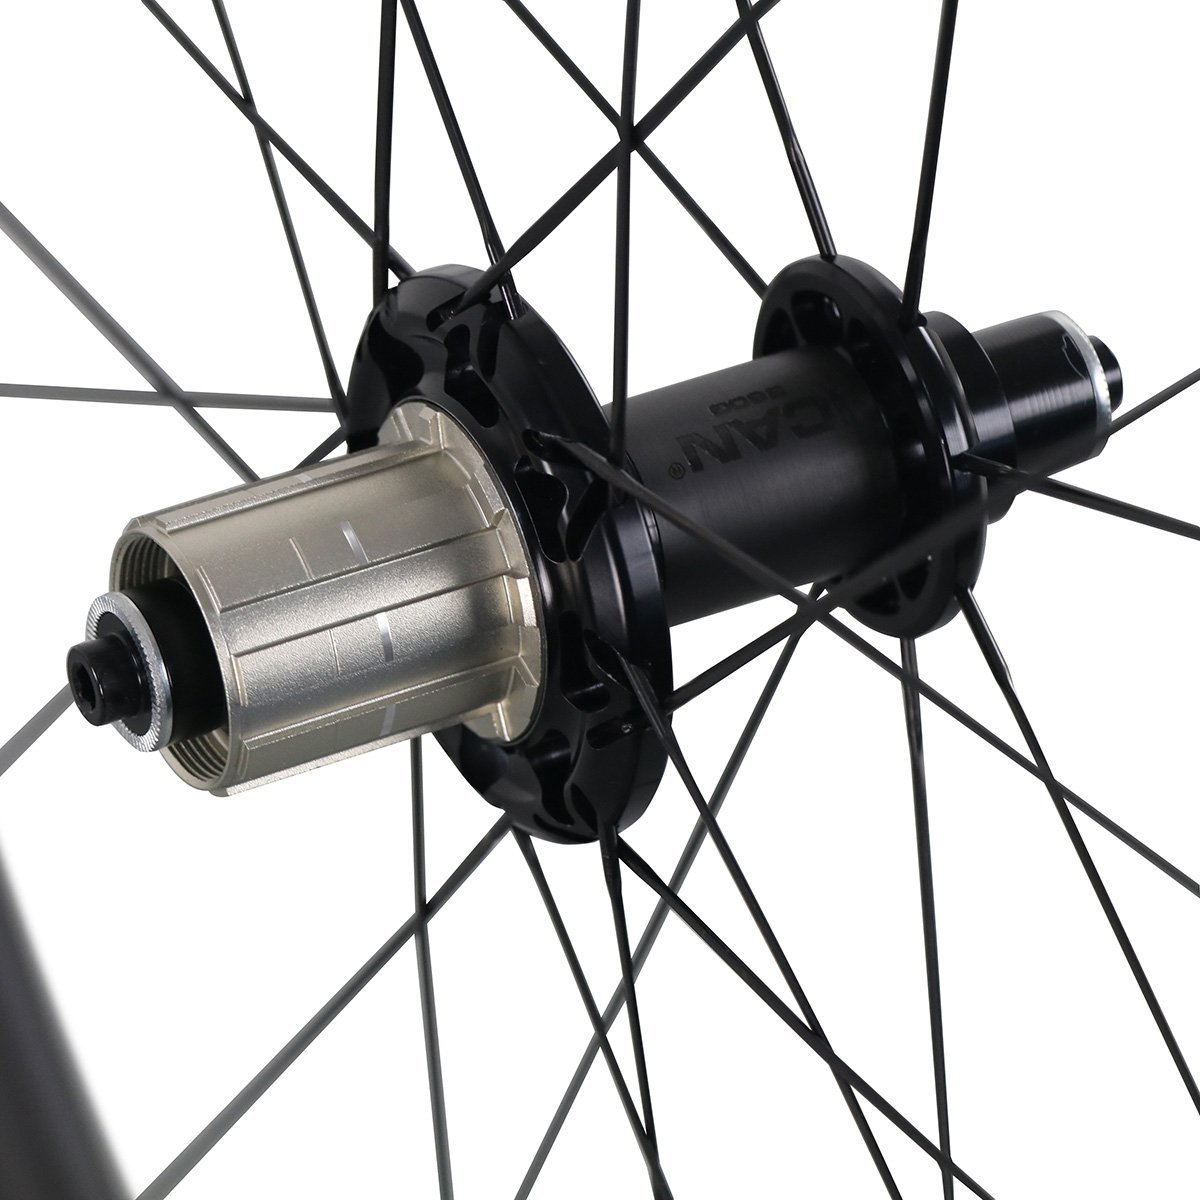 FL40 Wheelset with 2:1 Spokes icancycling